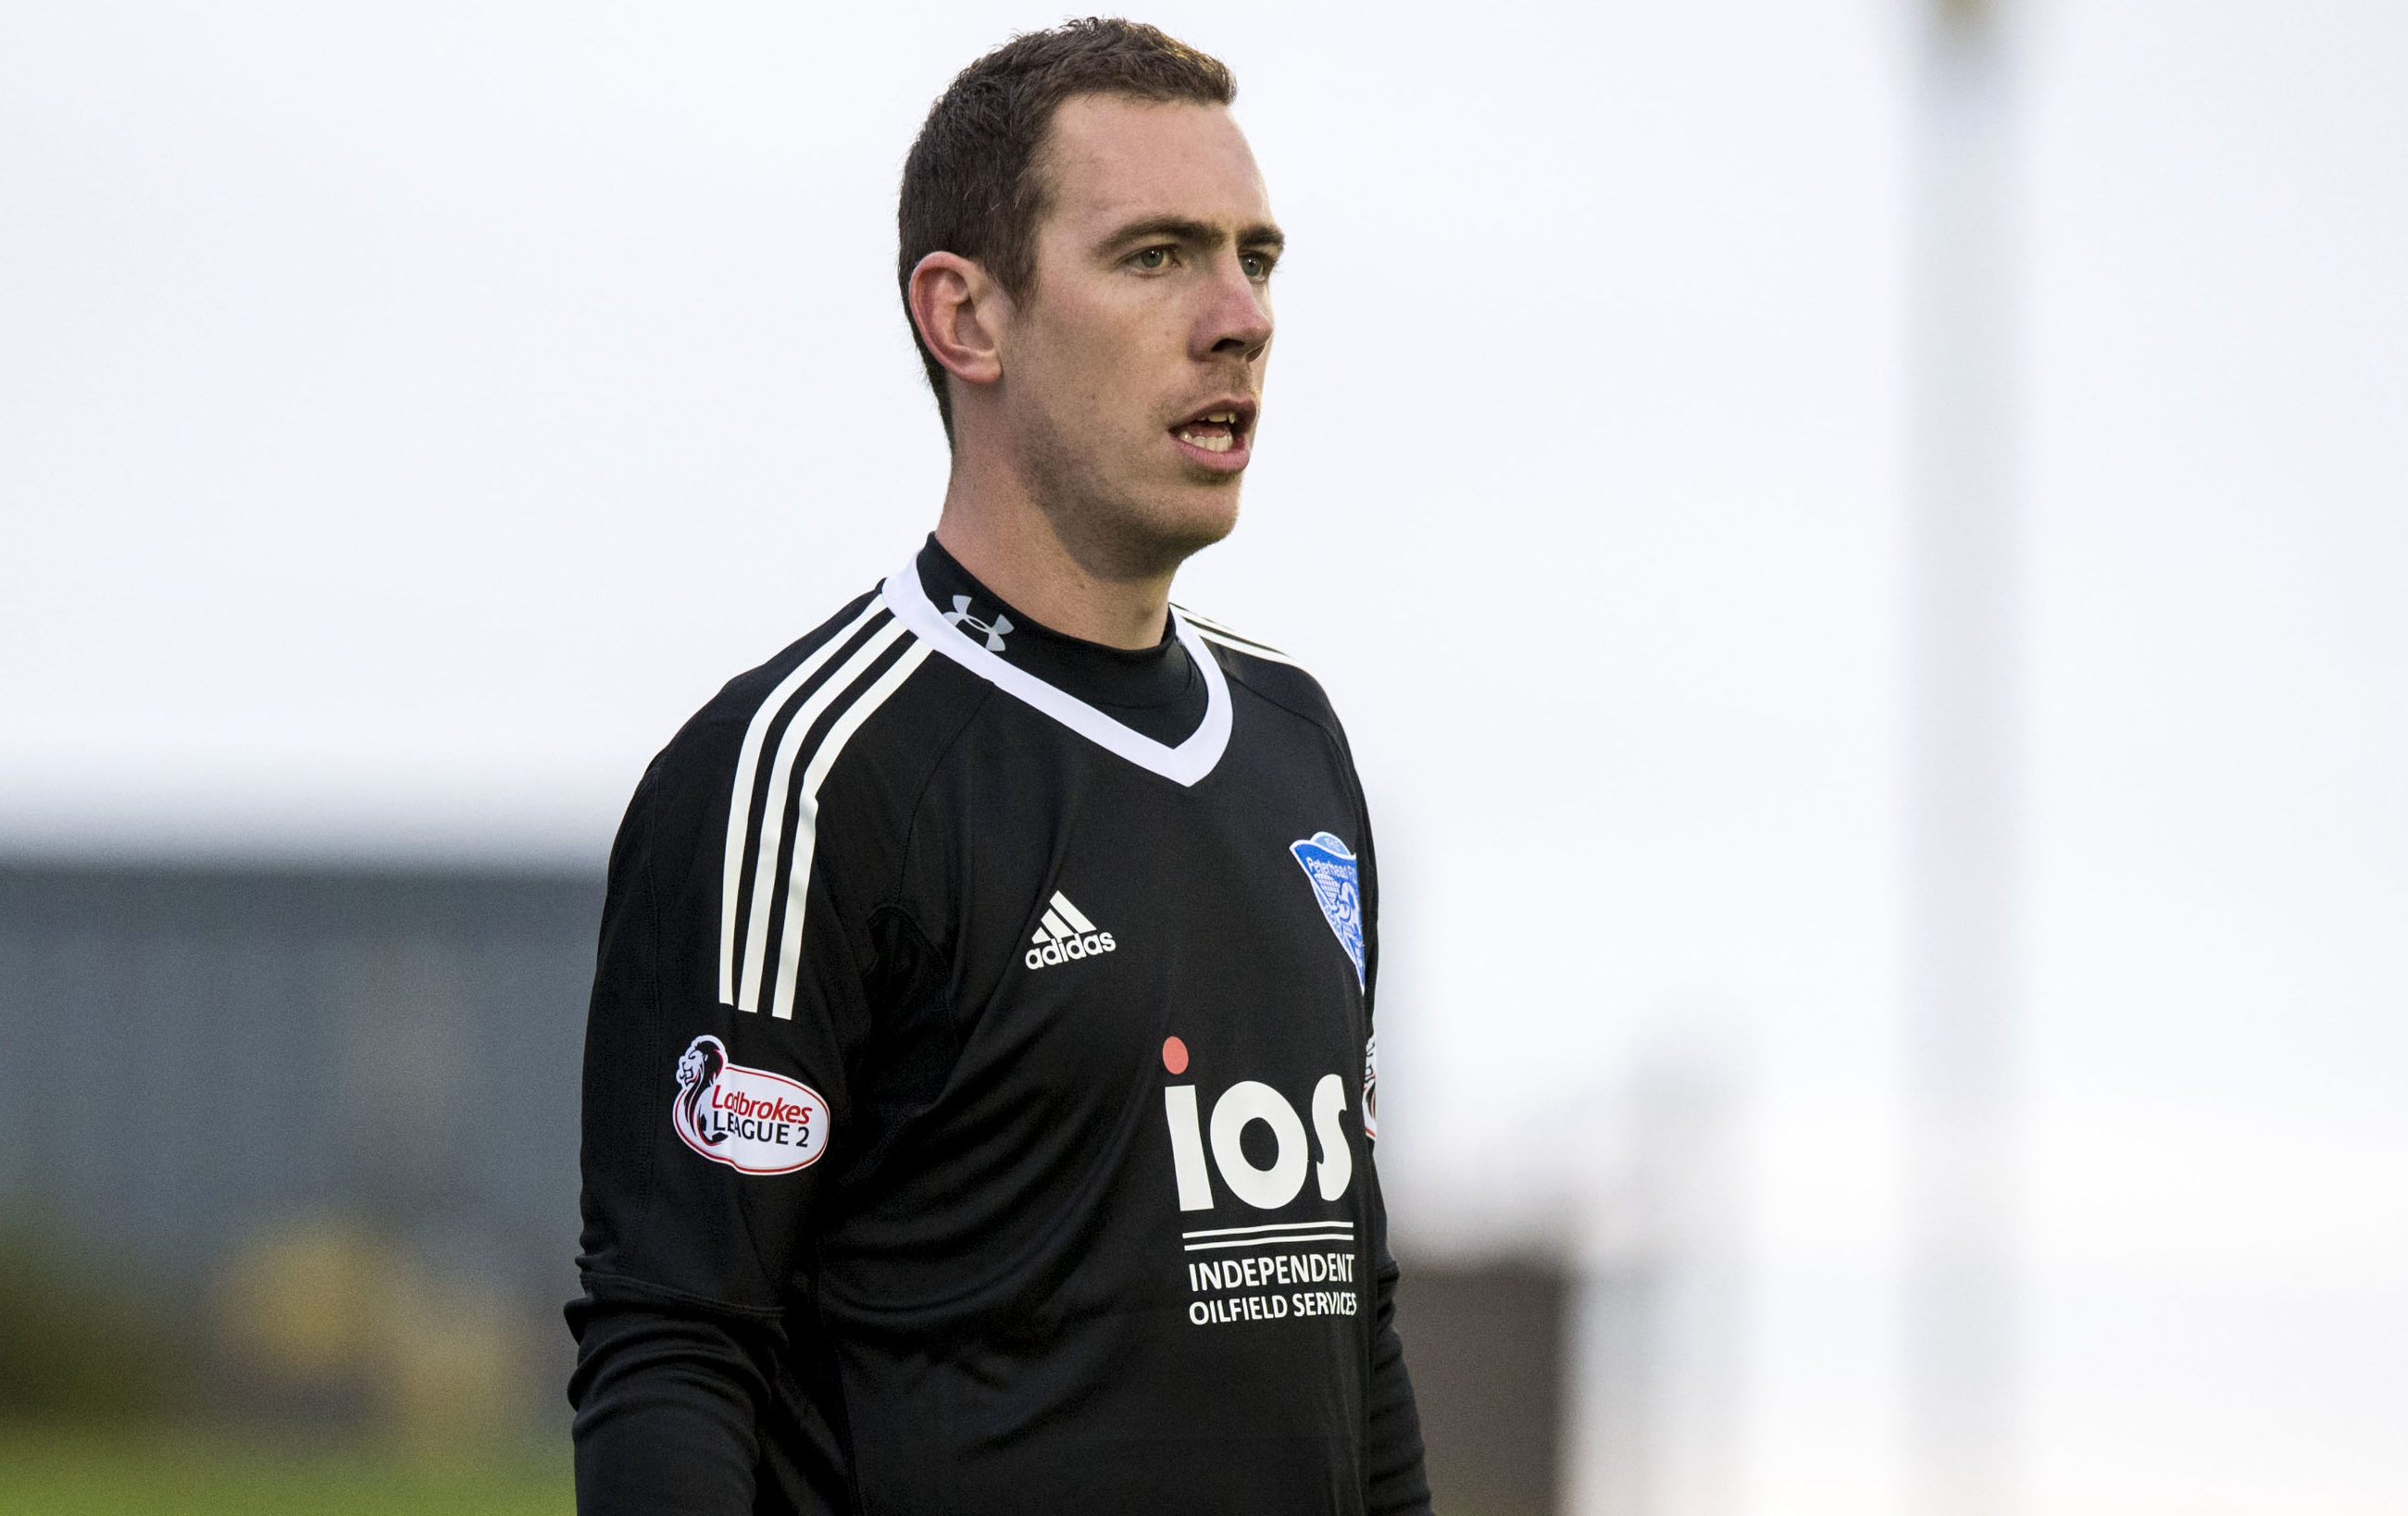 Greg Fleming in action for Peterhead.